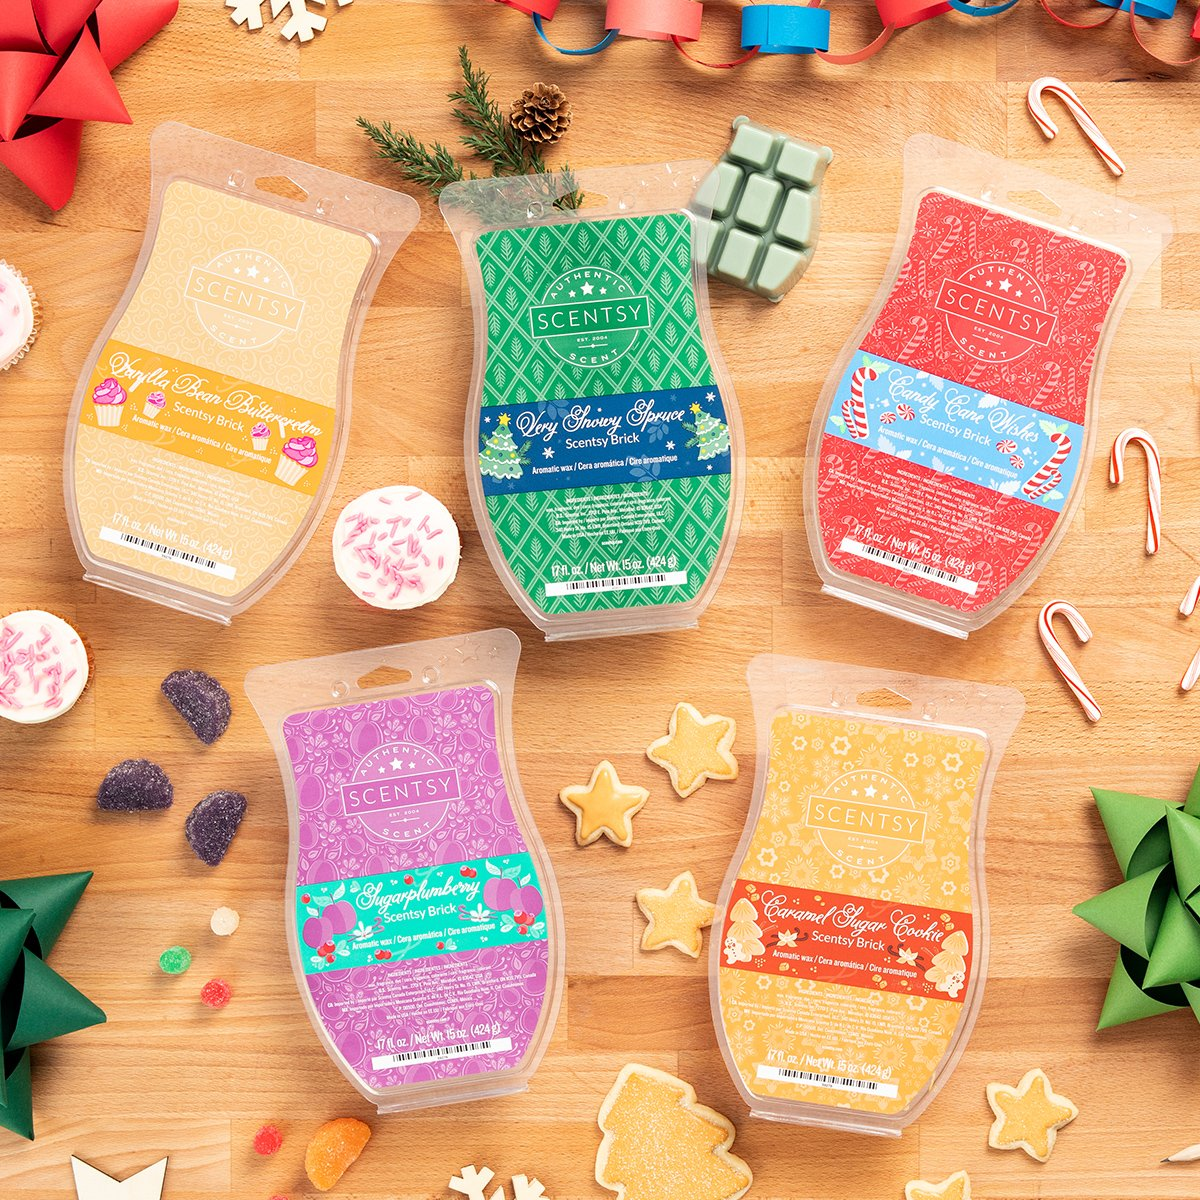 Holiday Scentsy Bricks 2019 Buy Scentsy Holiday Bricks Online